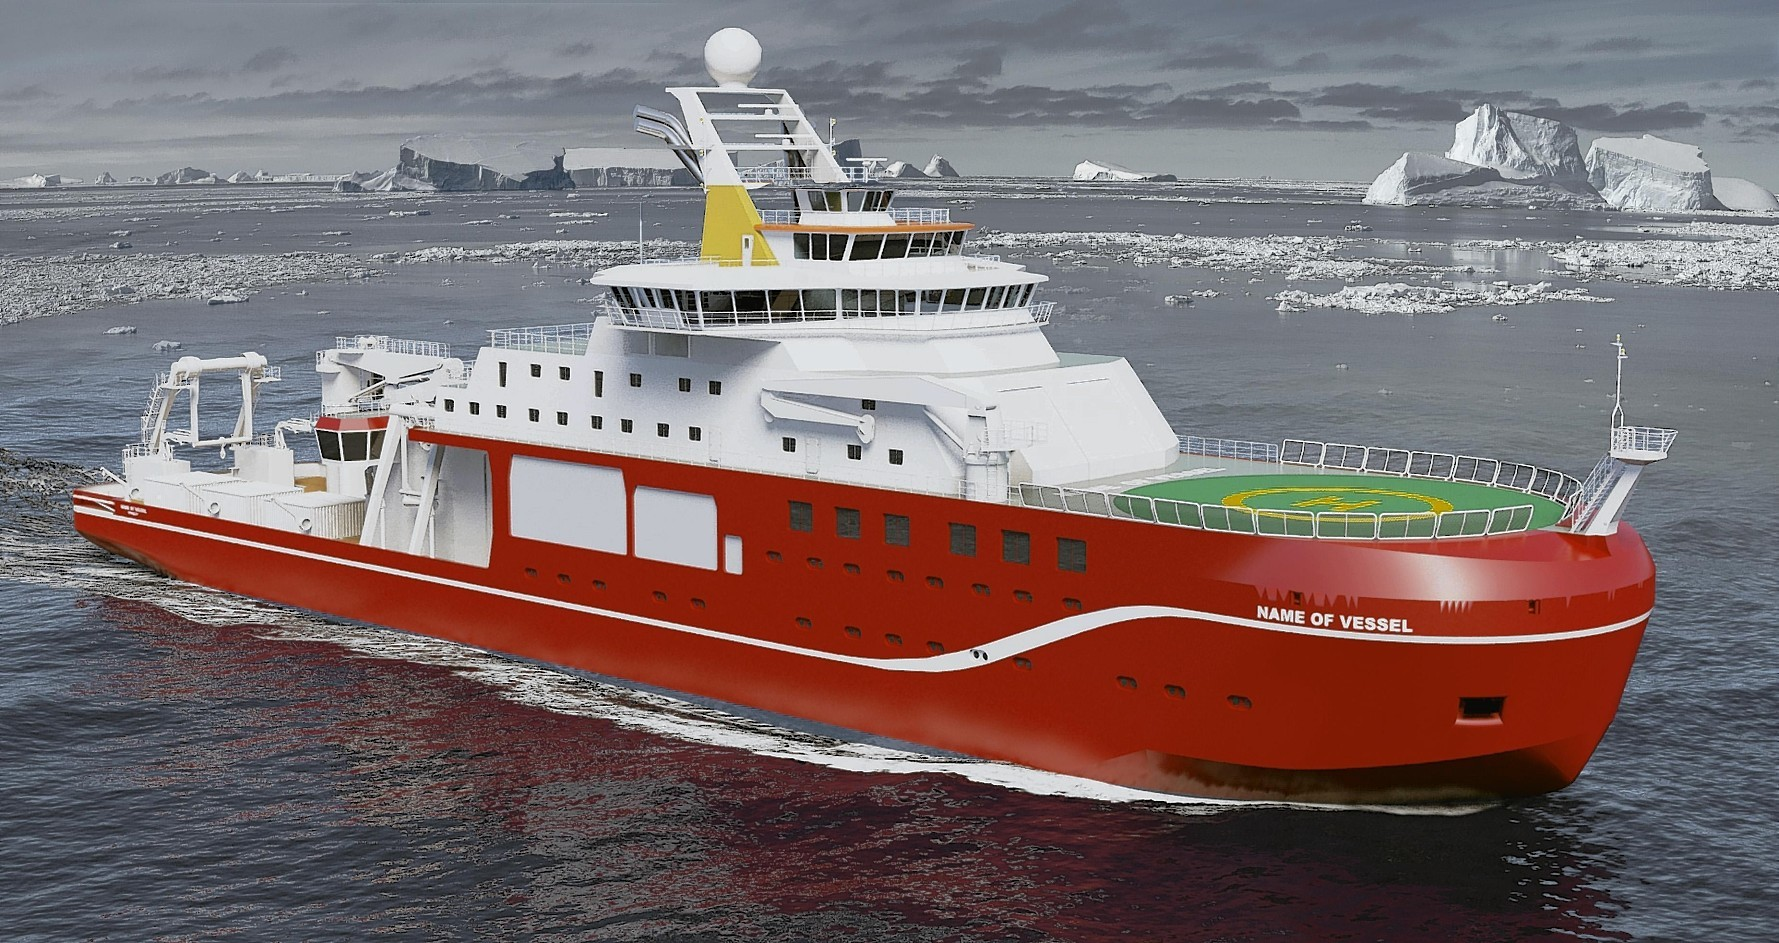 Undated handout artist impression issued by the Natural Environment Research Council (NERC) of a new state-of-the-art polar research ship, as construction of the ship.